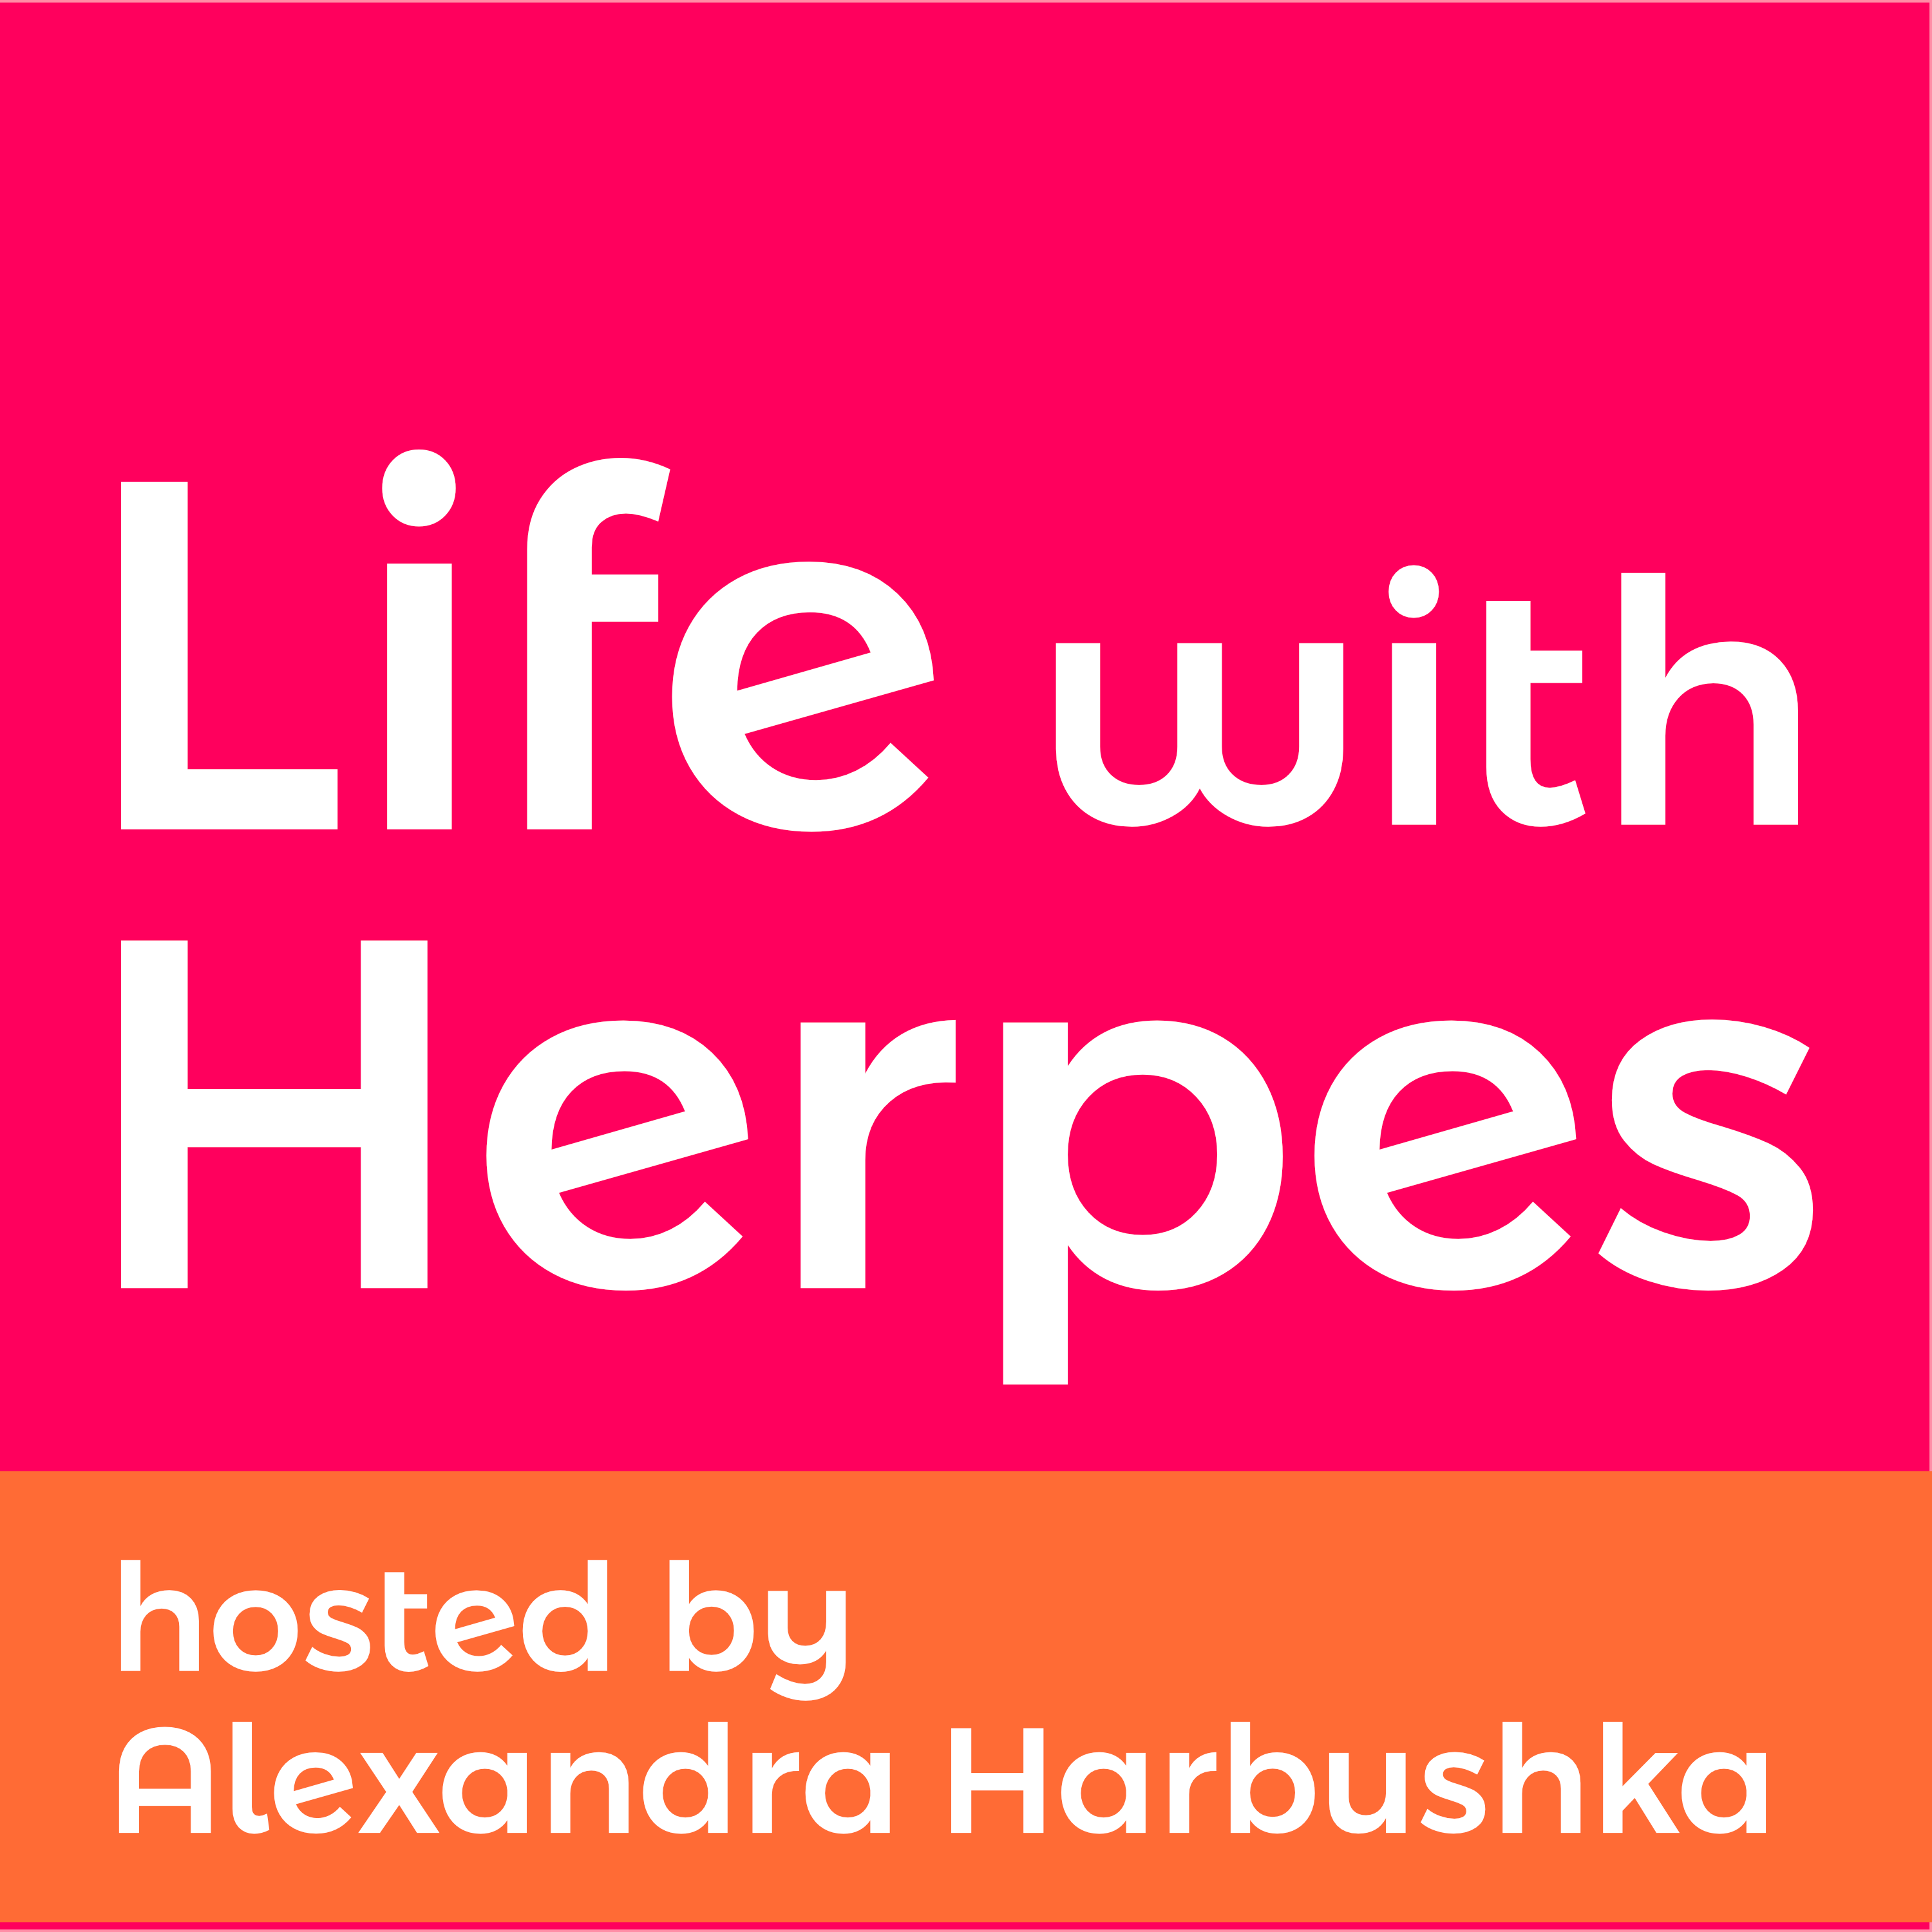 Can you have unprotected sex if you have herpes